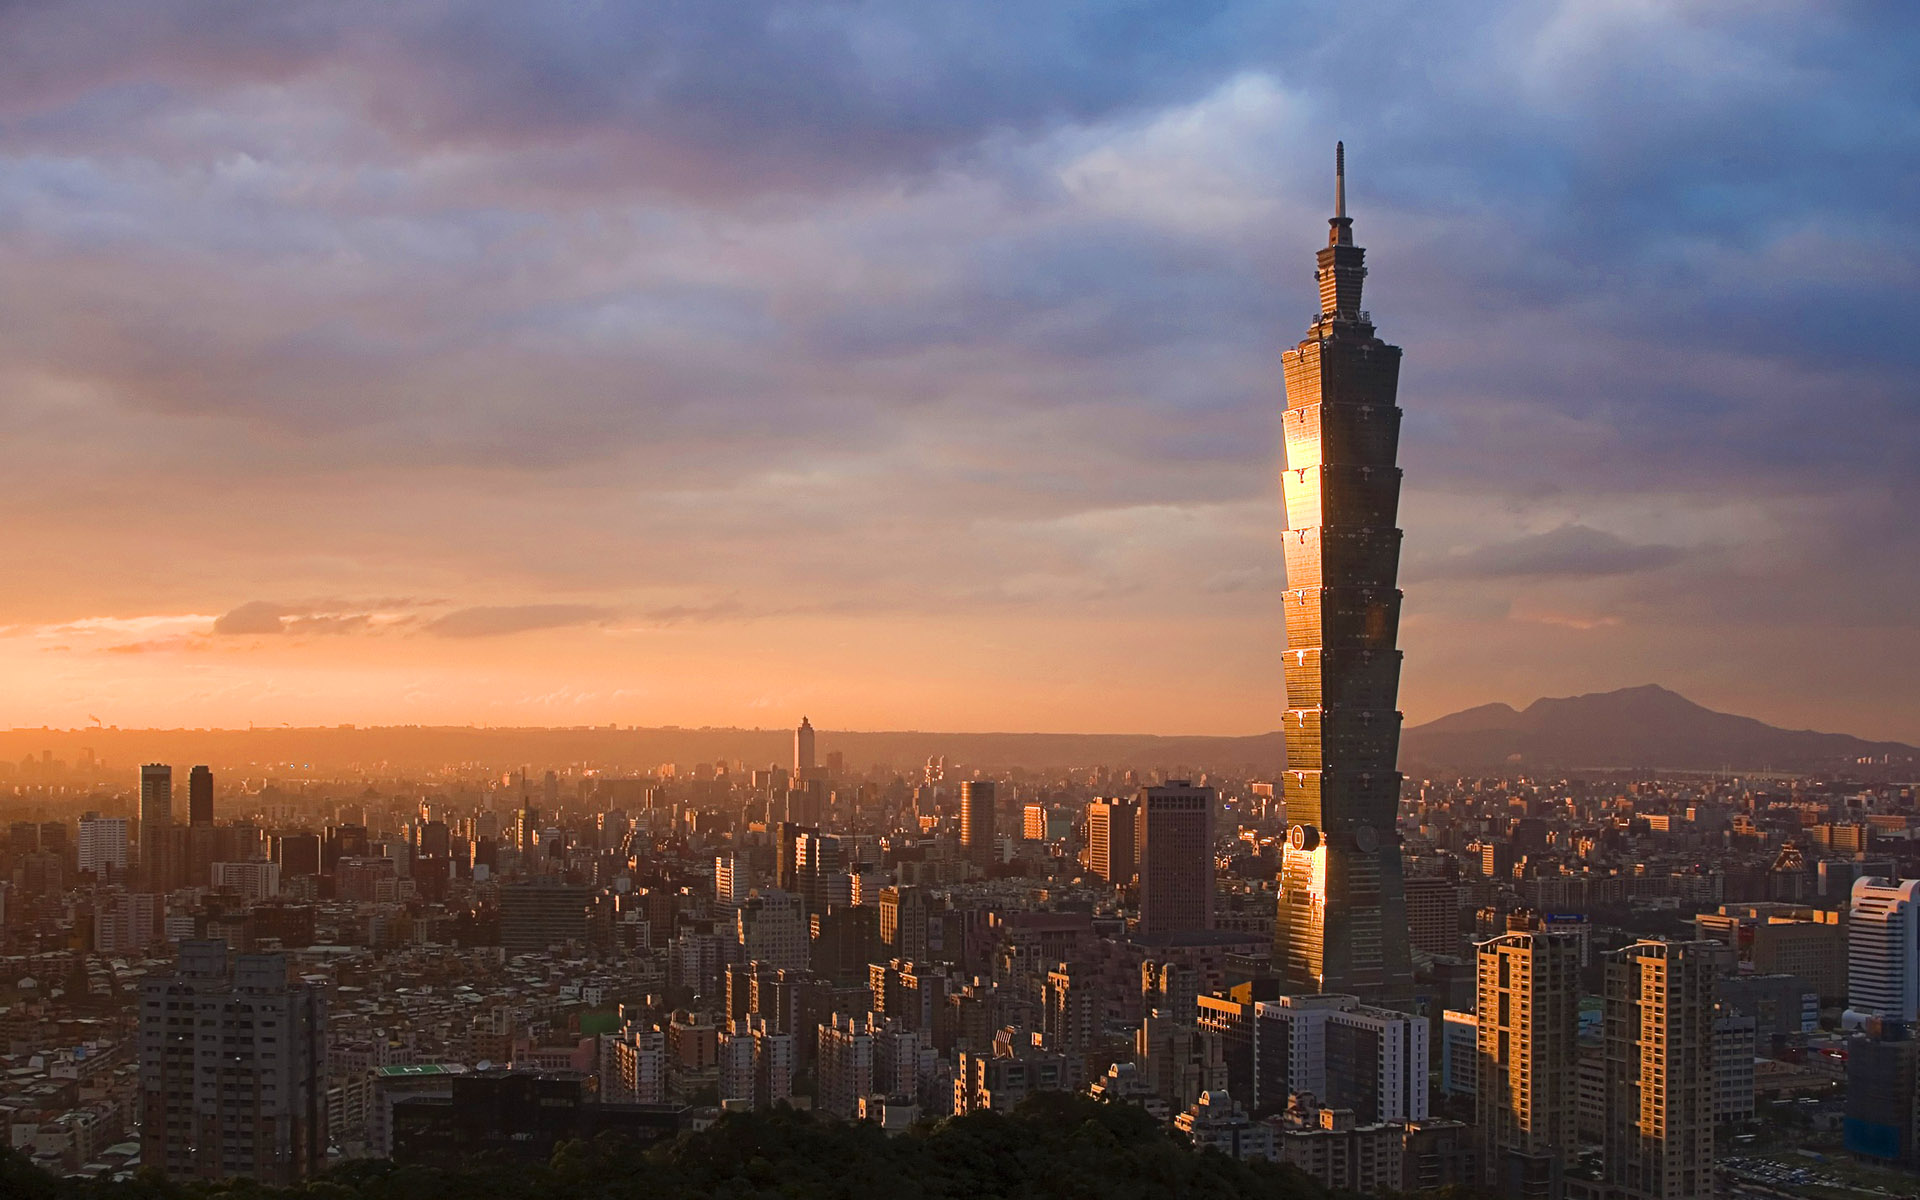 taipei 101 Taipei 101 was designed to resemble a gigantic bamboo stalk it's impossible to miss every day the tip of taipei 101 is lit up a different color.